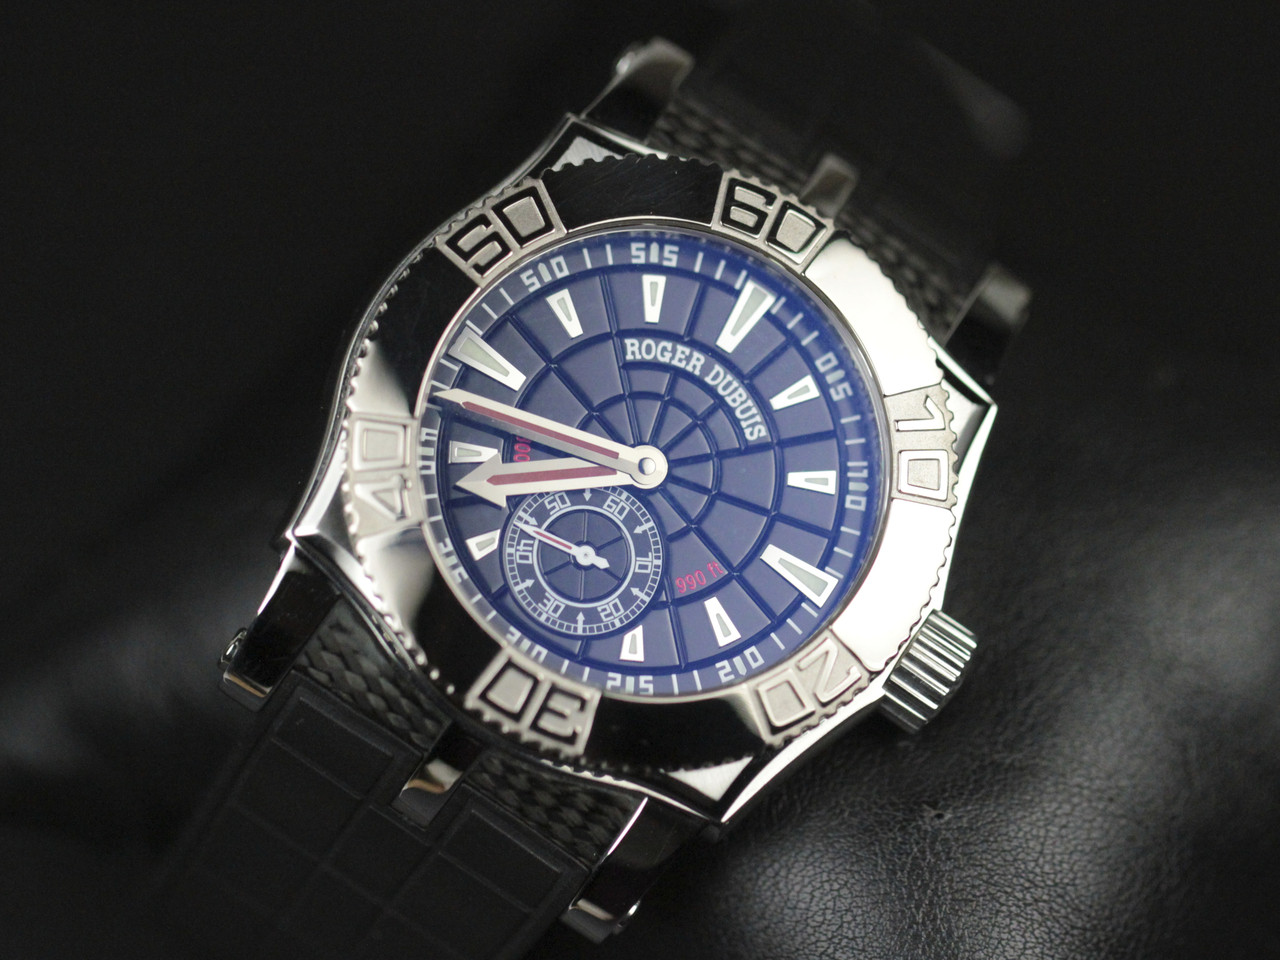 Anti-reflective treatment on the crystal - Roger Dubuis Watch - Easy Diver Black Dial White Gold Bezel - Legend of Time Chicago Watch Center www.Legendoftime.com